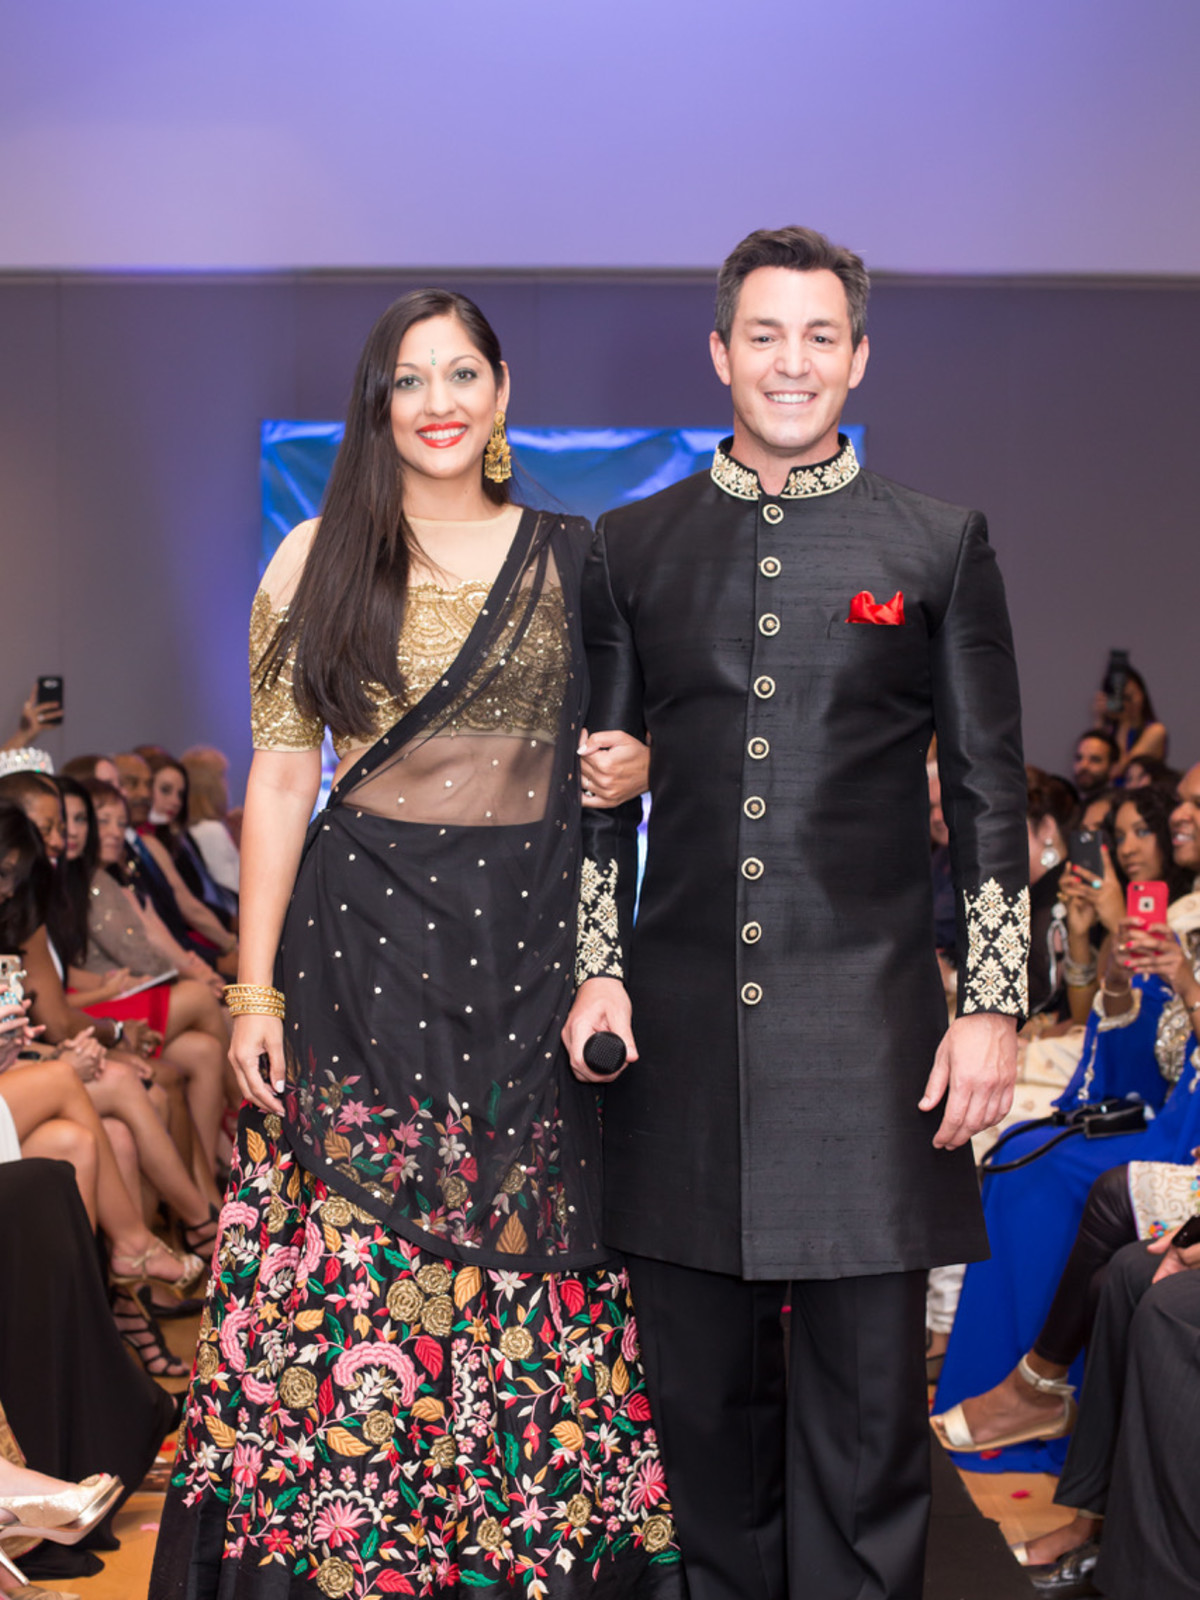 Sippi Khurana, Andy Cerota at International Mothers Day Soiree